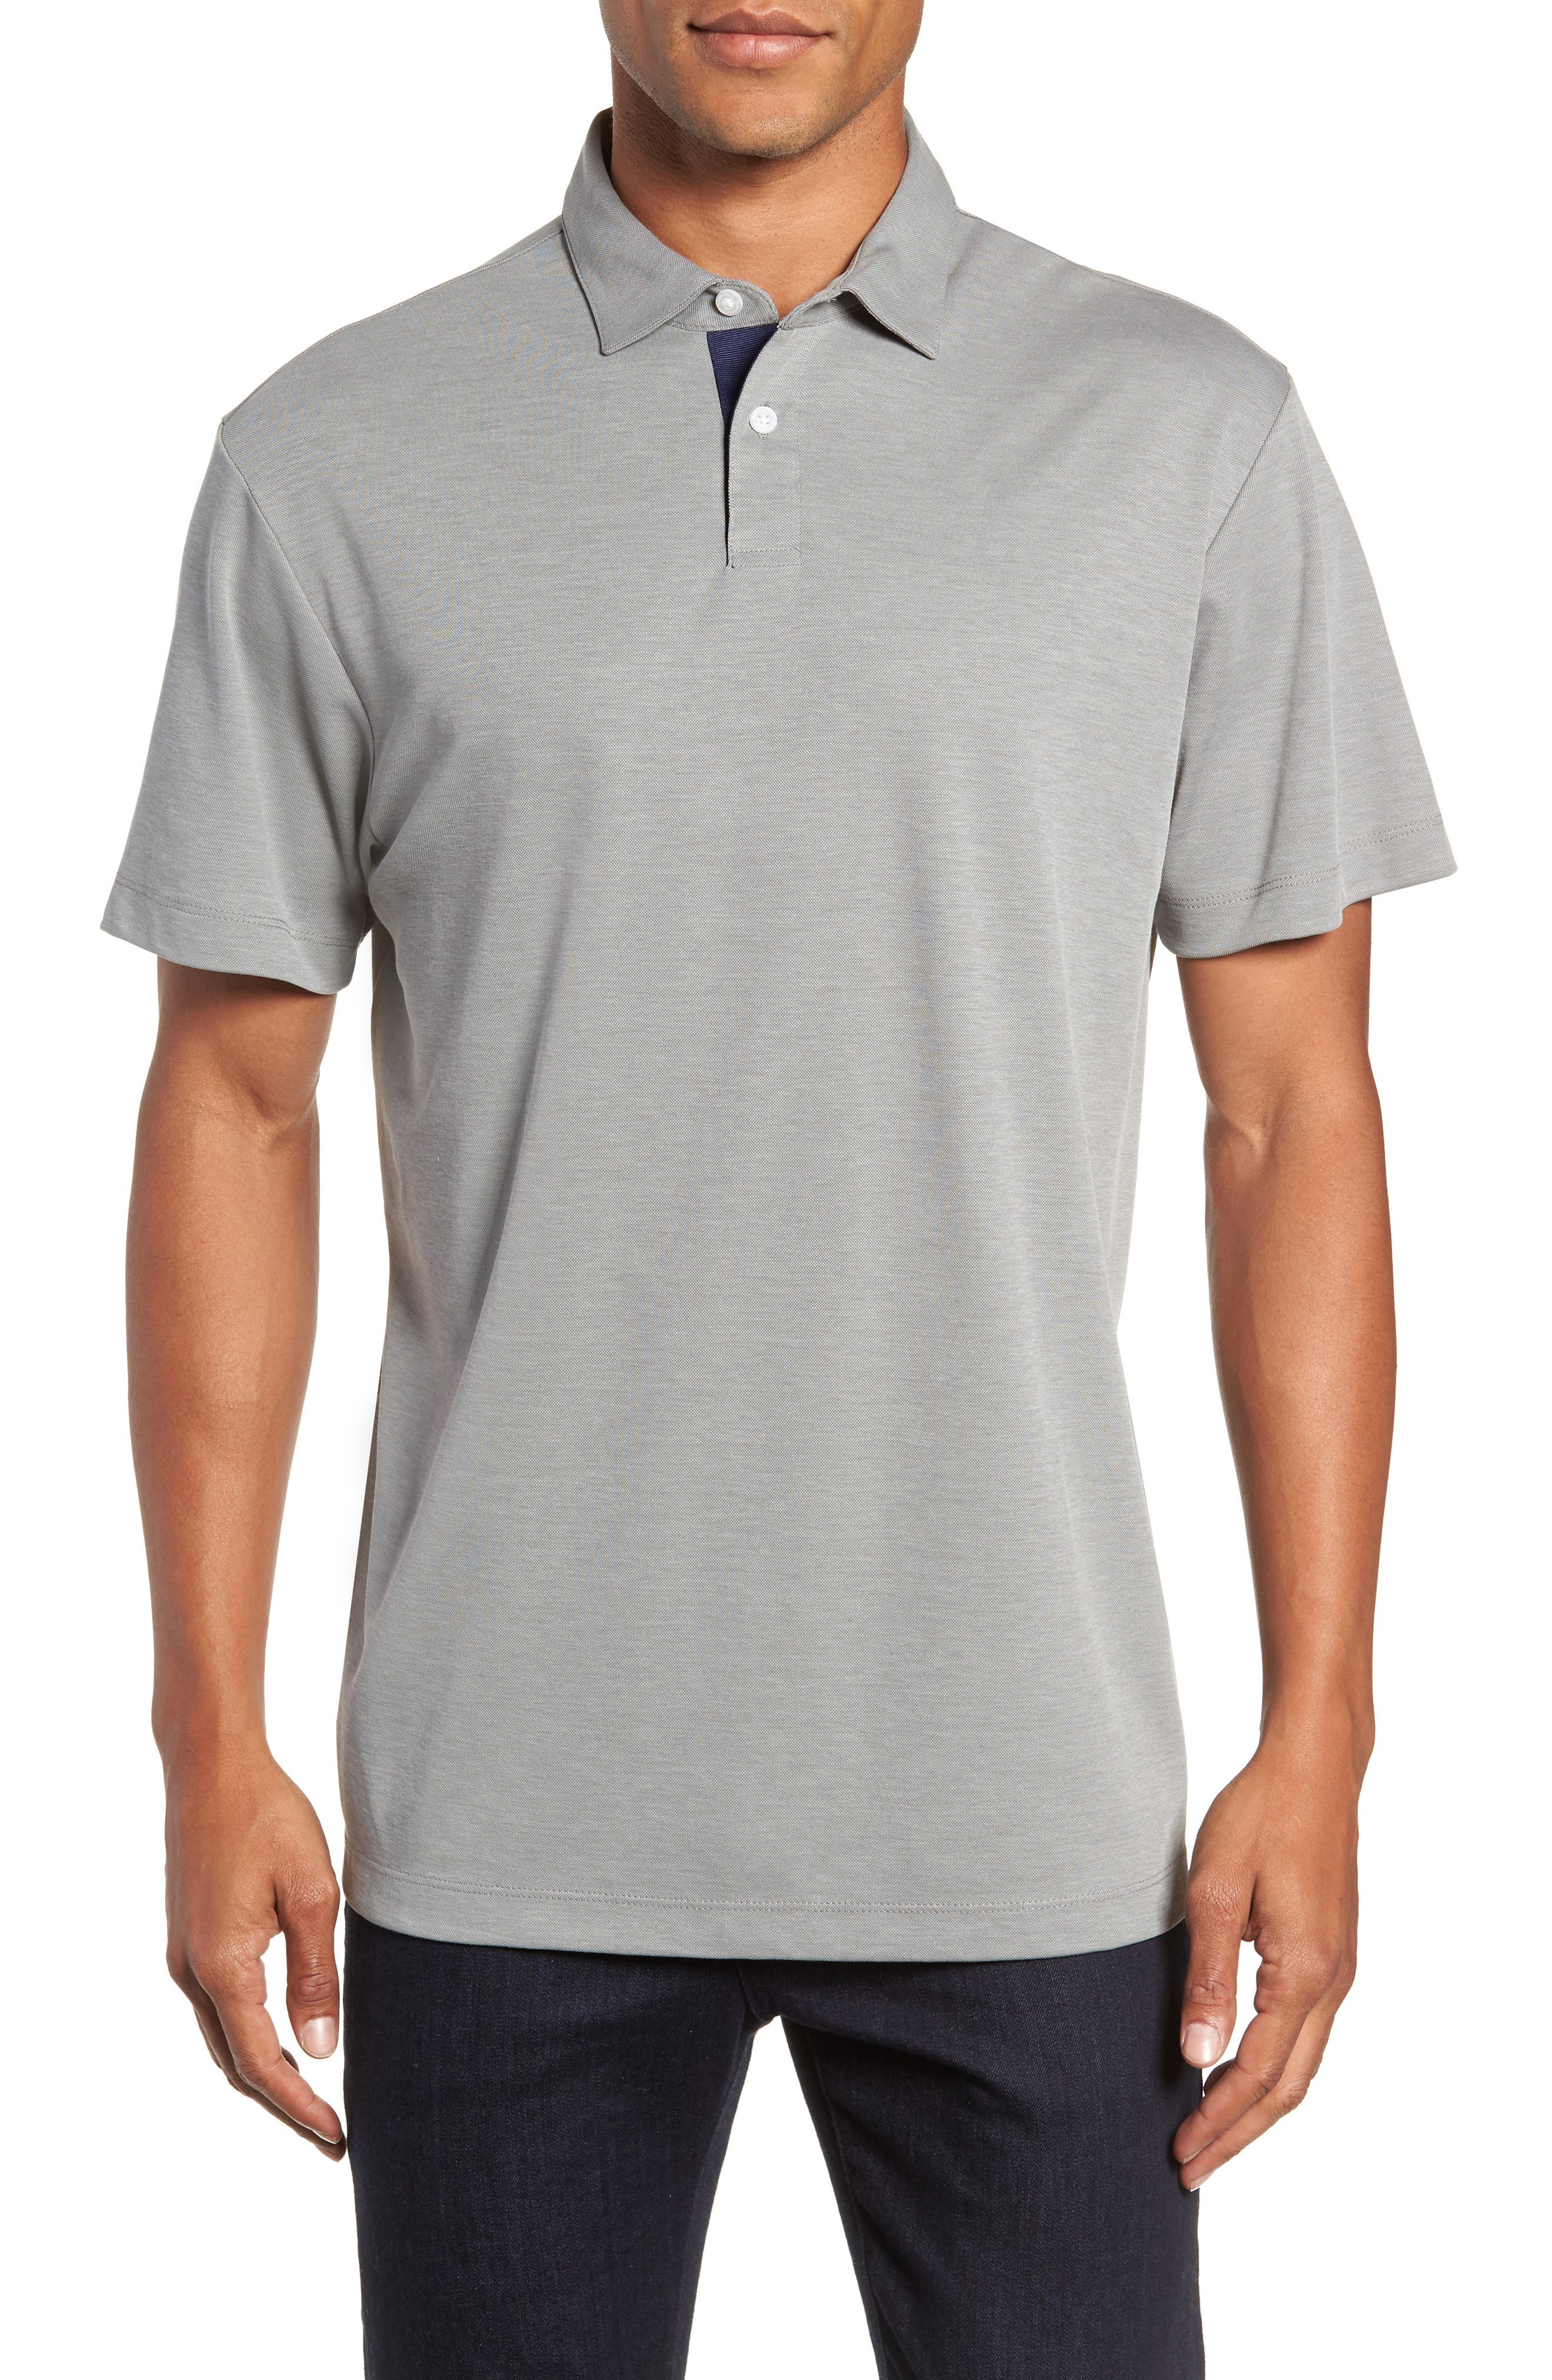 Andrew Regular Fit Piqué Polo,                         Main,                         color, STONE